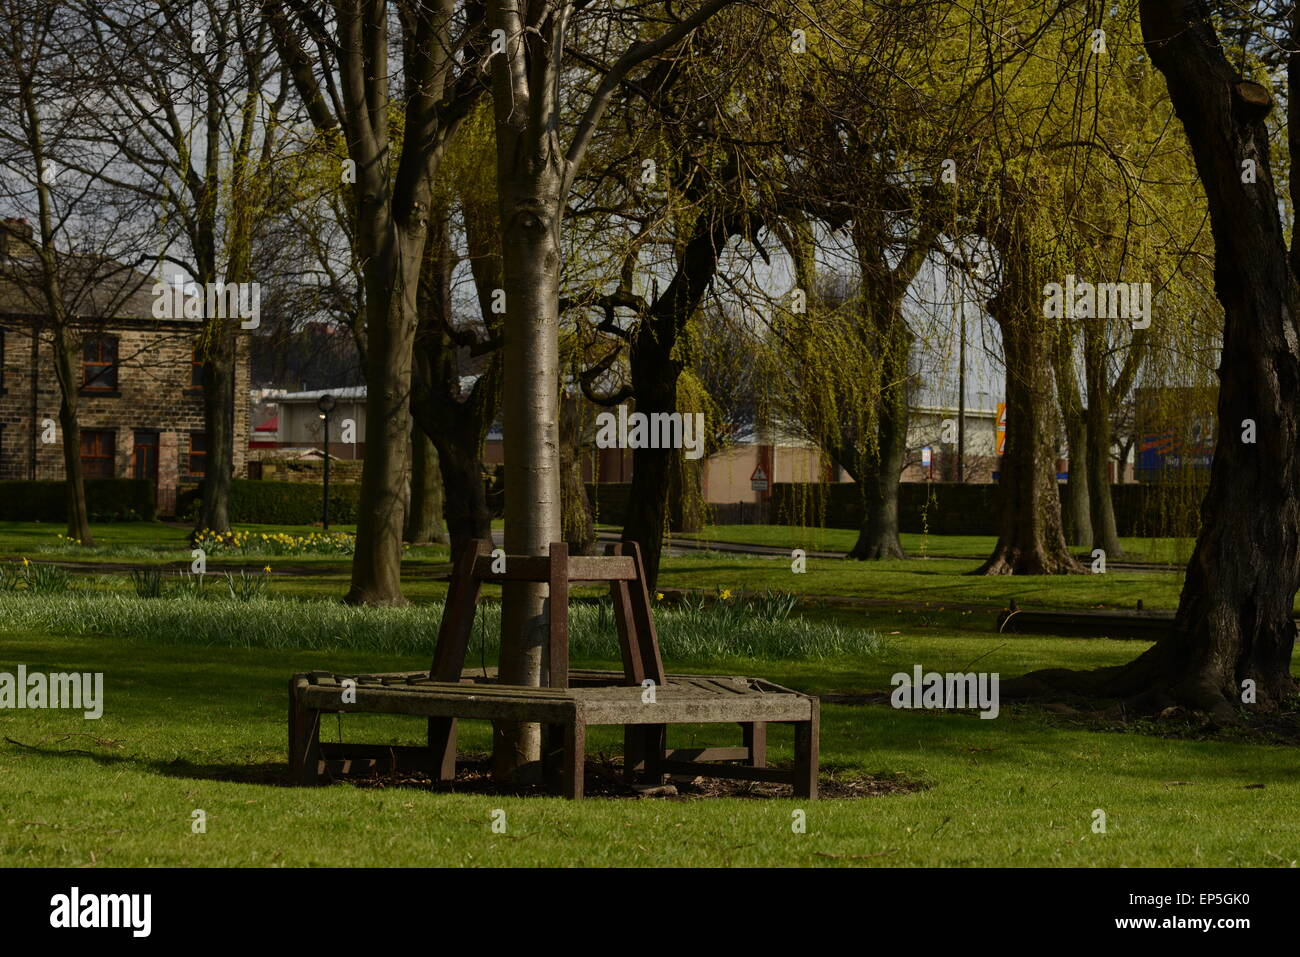 A view of the grounds at Dewsbury Minster - Stock Image